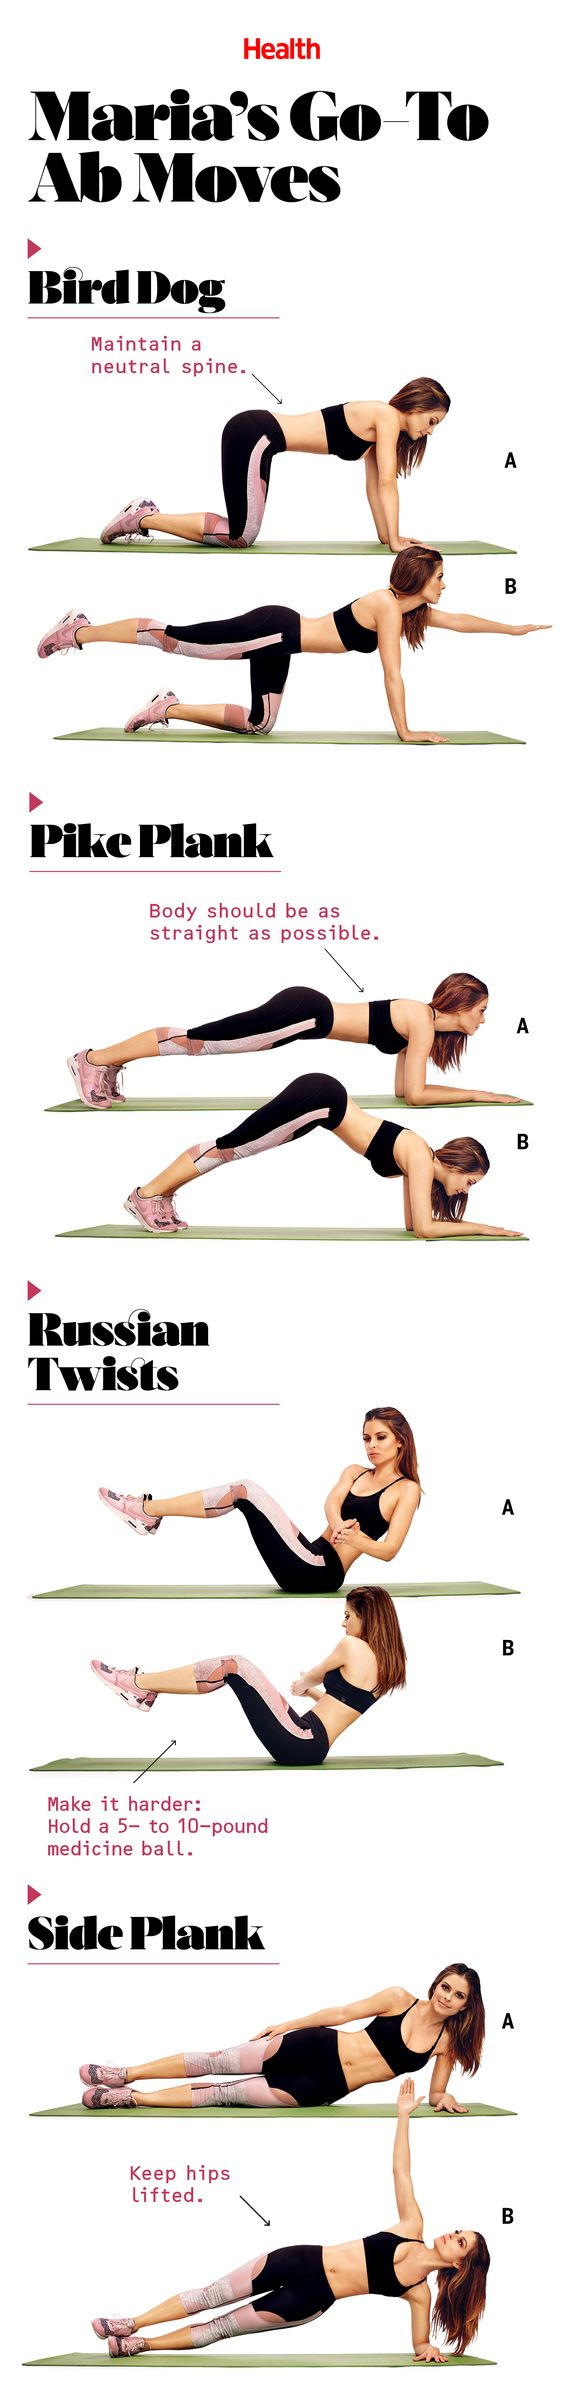 These Are the Ab Moves Maria Menounos Swears By: Maria's trainer shares her stress-crushing daily workout for a toned stomach. | Health.com